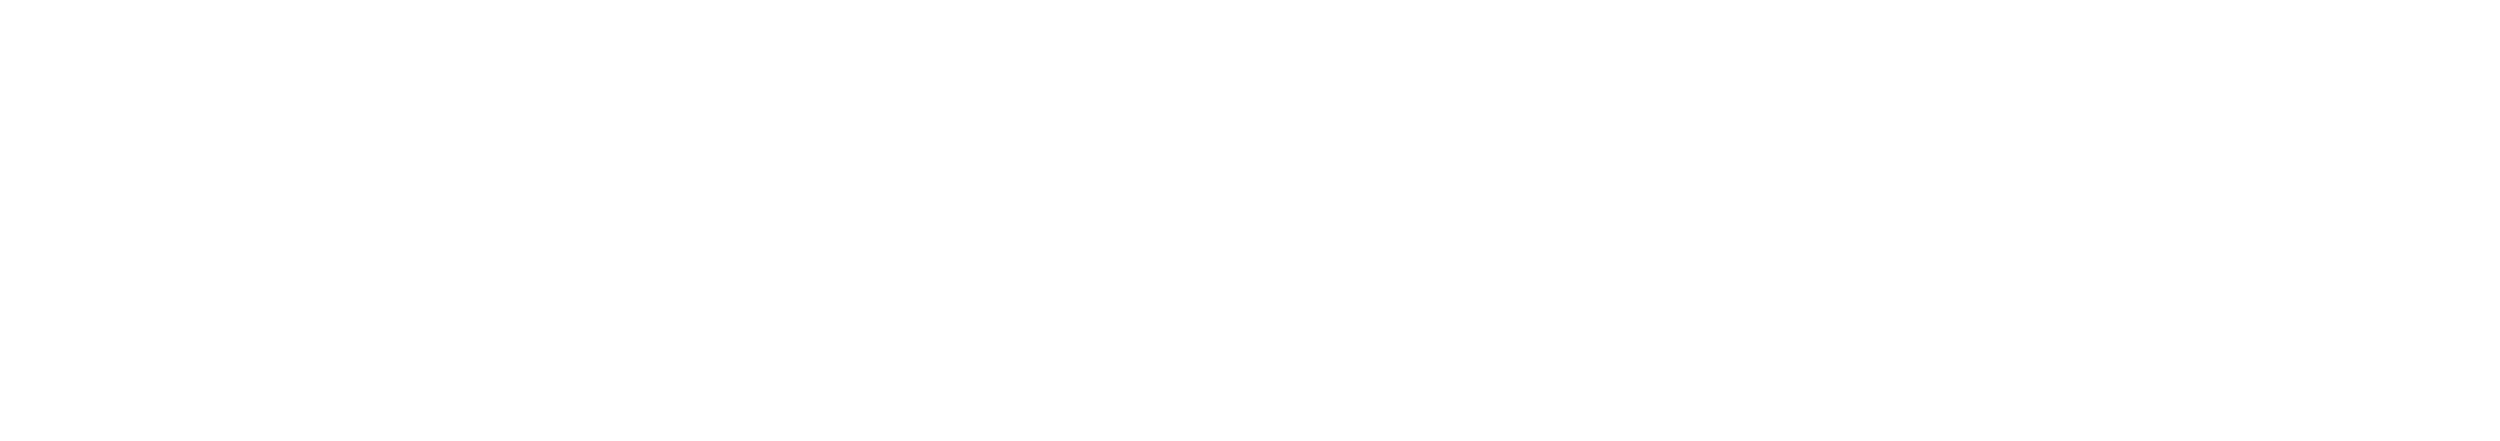 LM_logo_white.png